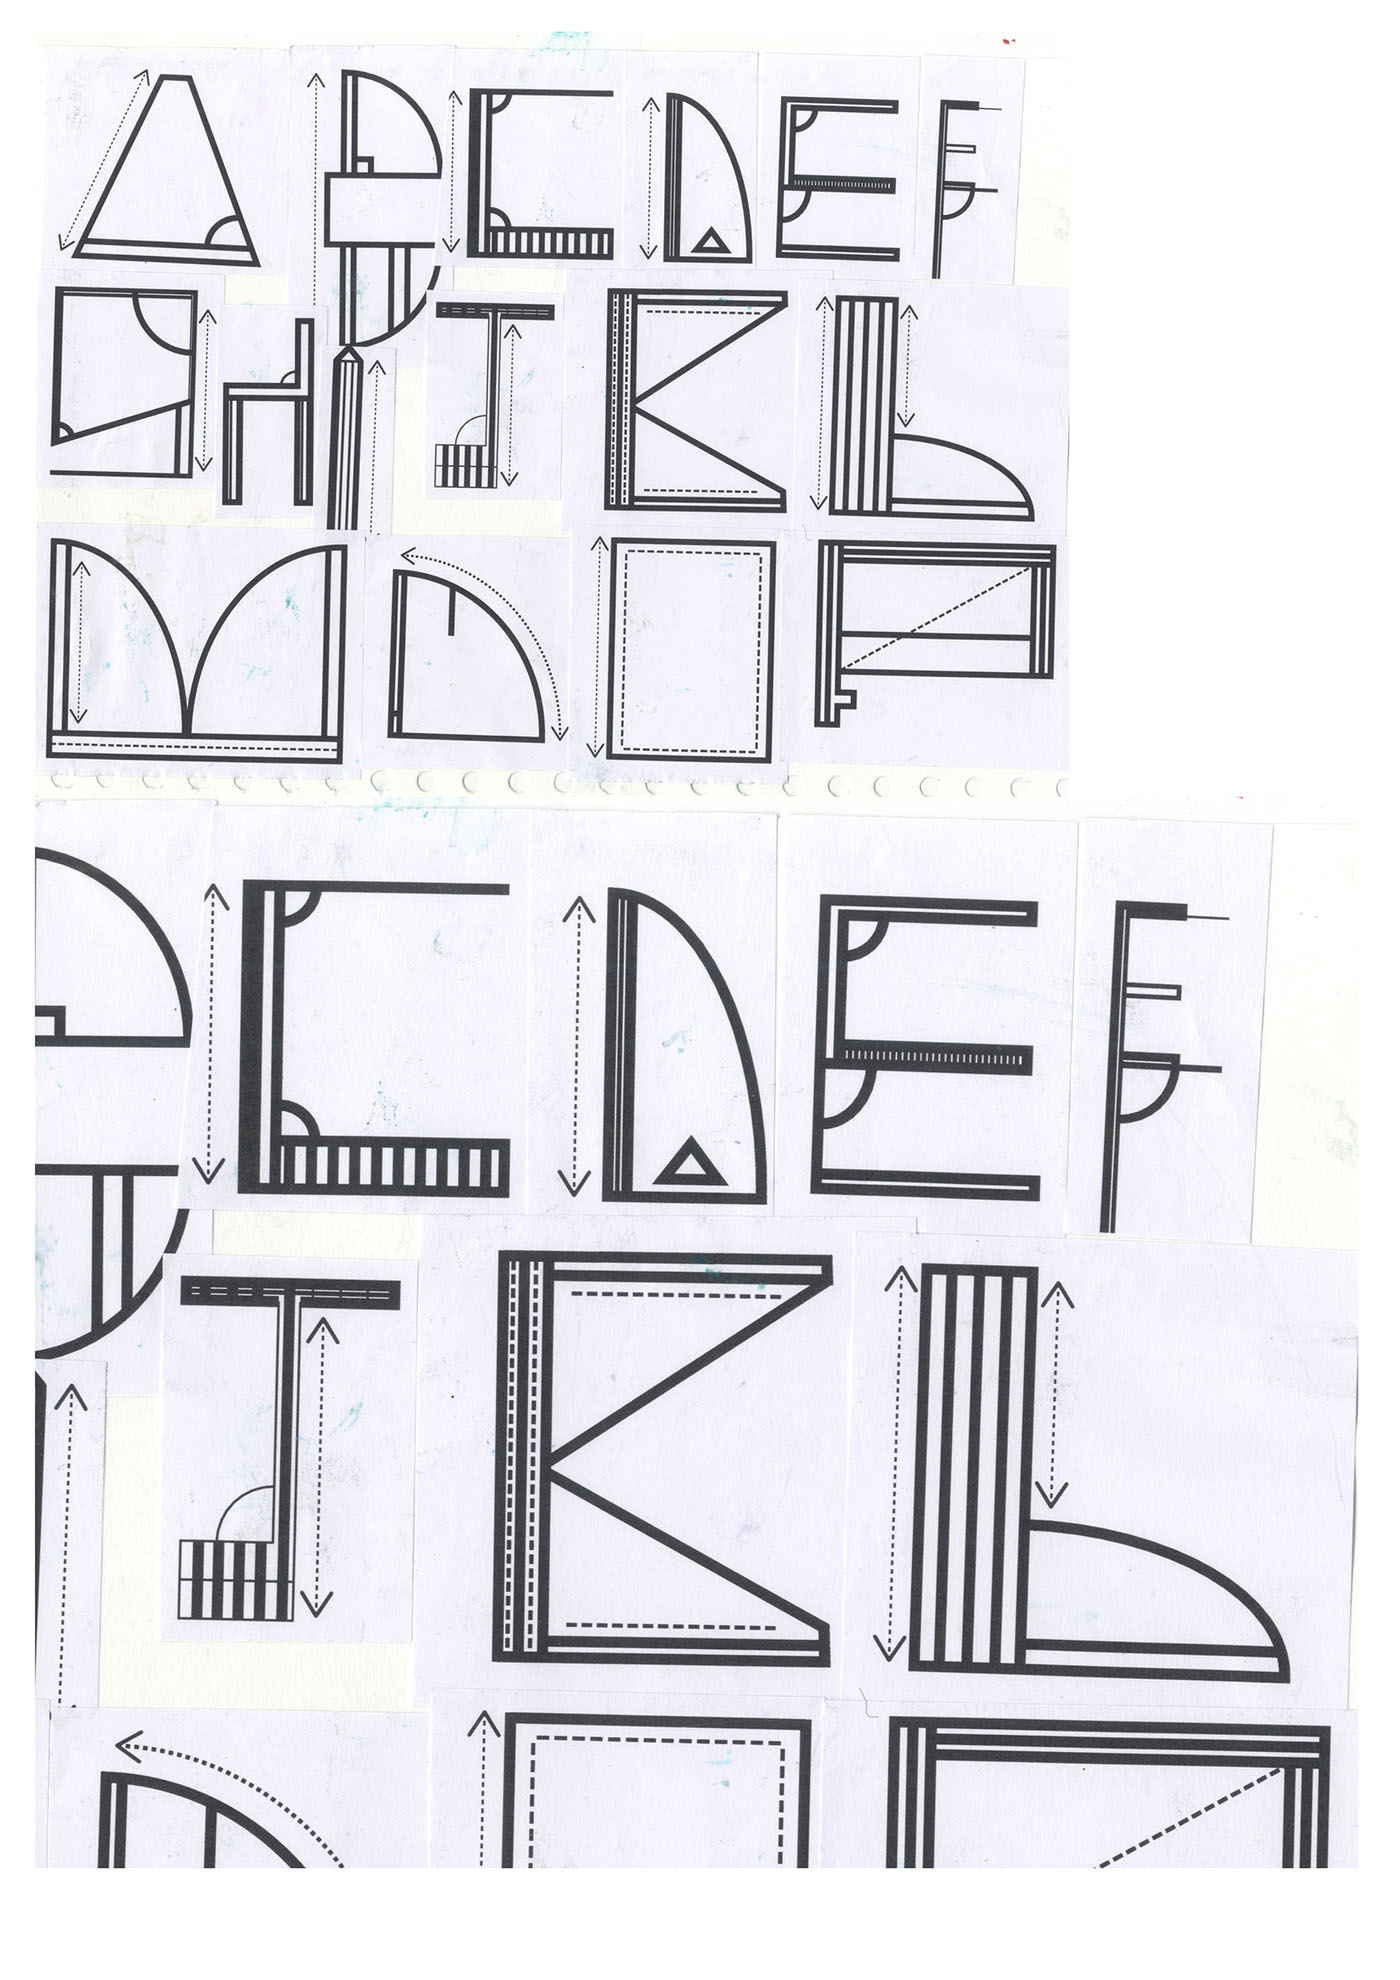 Architecture typeface on behance of building which i found appealing and from those pictures i traced over parts of the image and manipulated the font to make it look like a blueprint malvernweather Gallery